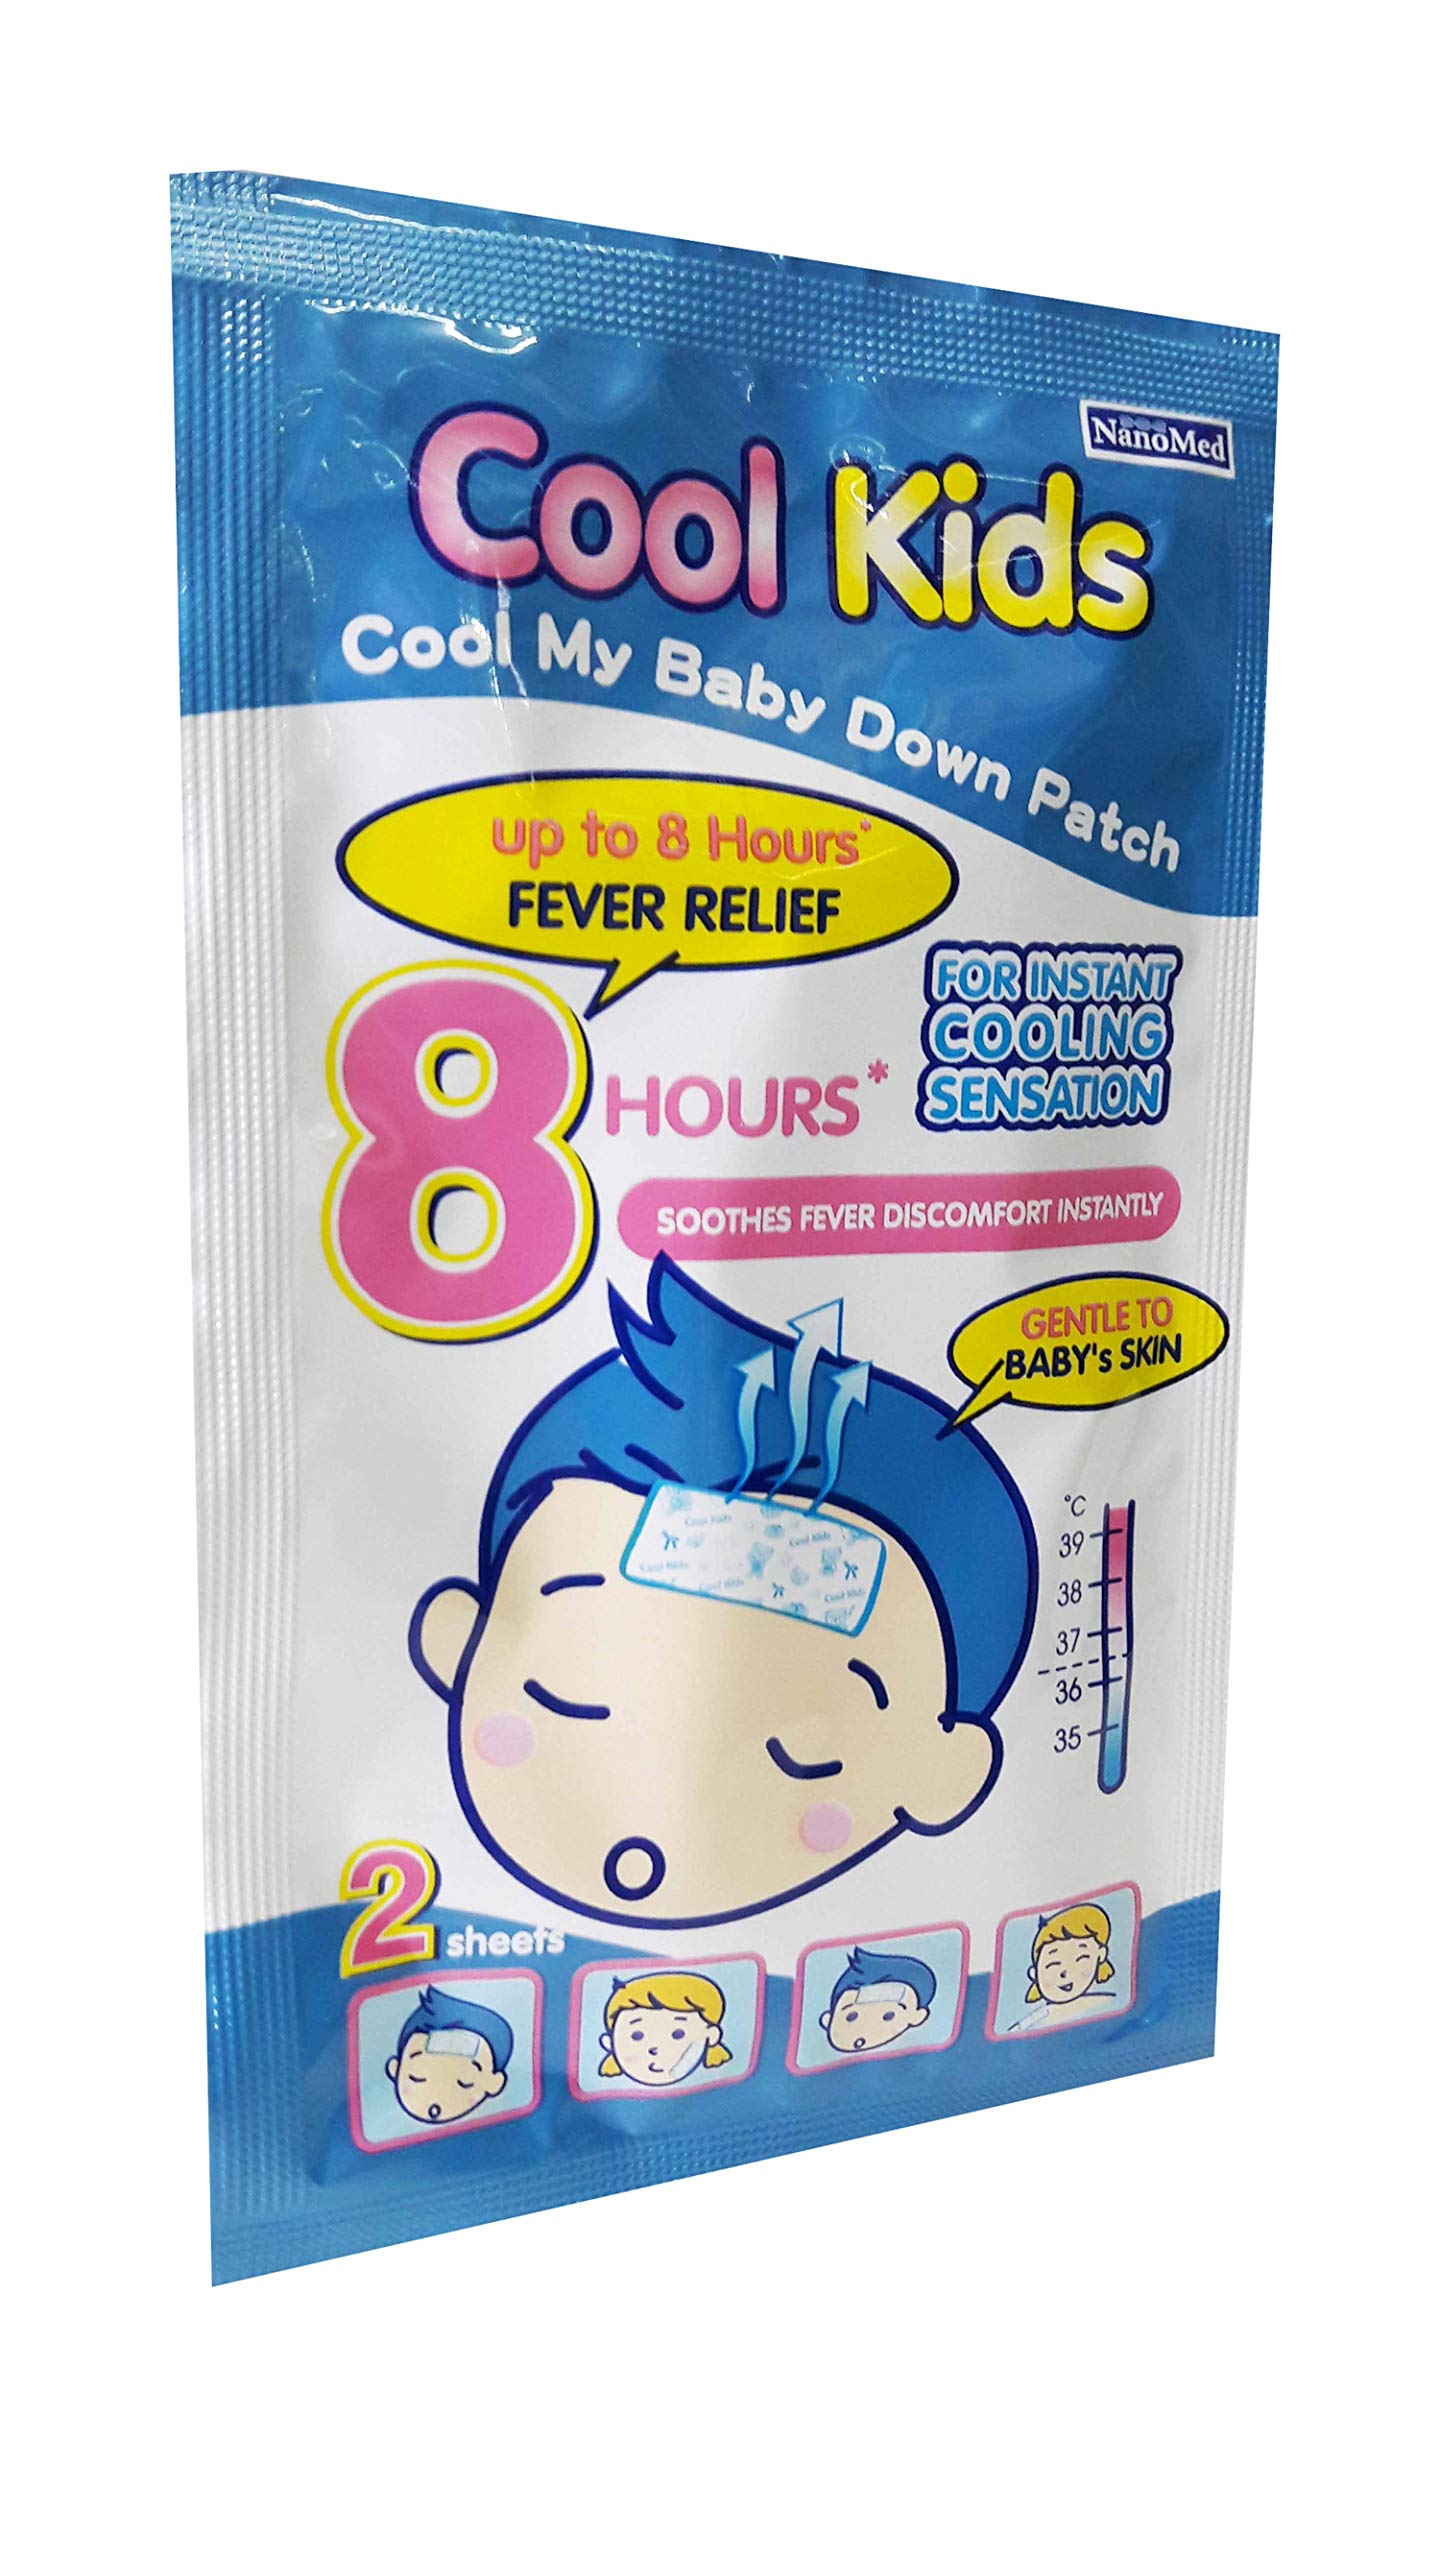 Cool Kids Fever Patch (6 Patches/Pack), Desired for Baby and Kids Age 15 Months up, for Instant Cooling Sensation up to 8 Hours Fever Relief